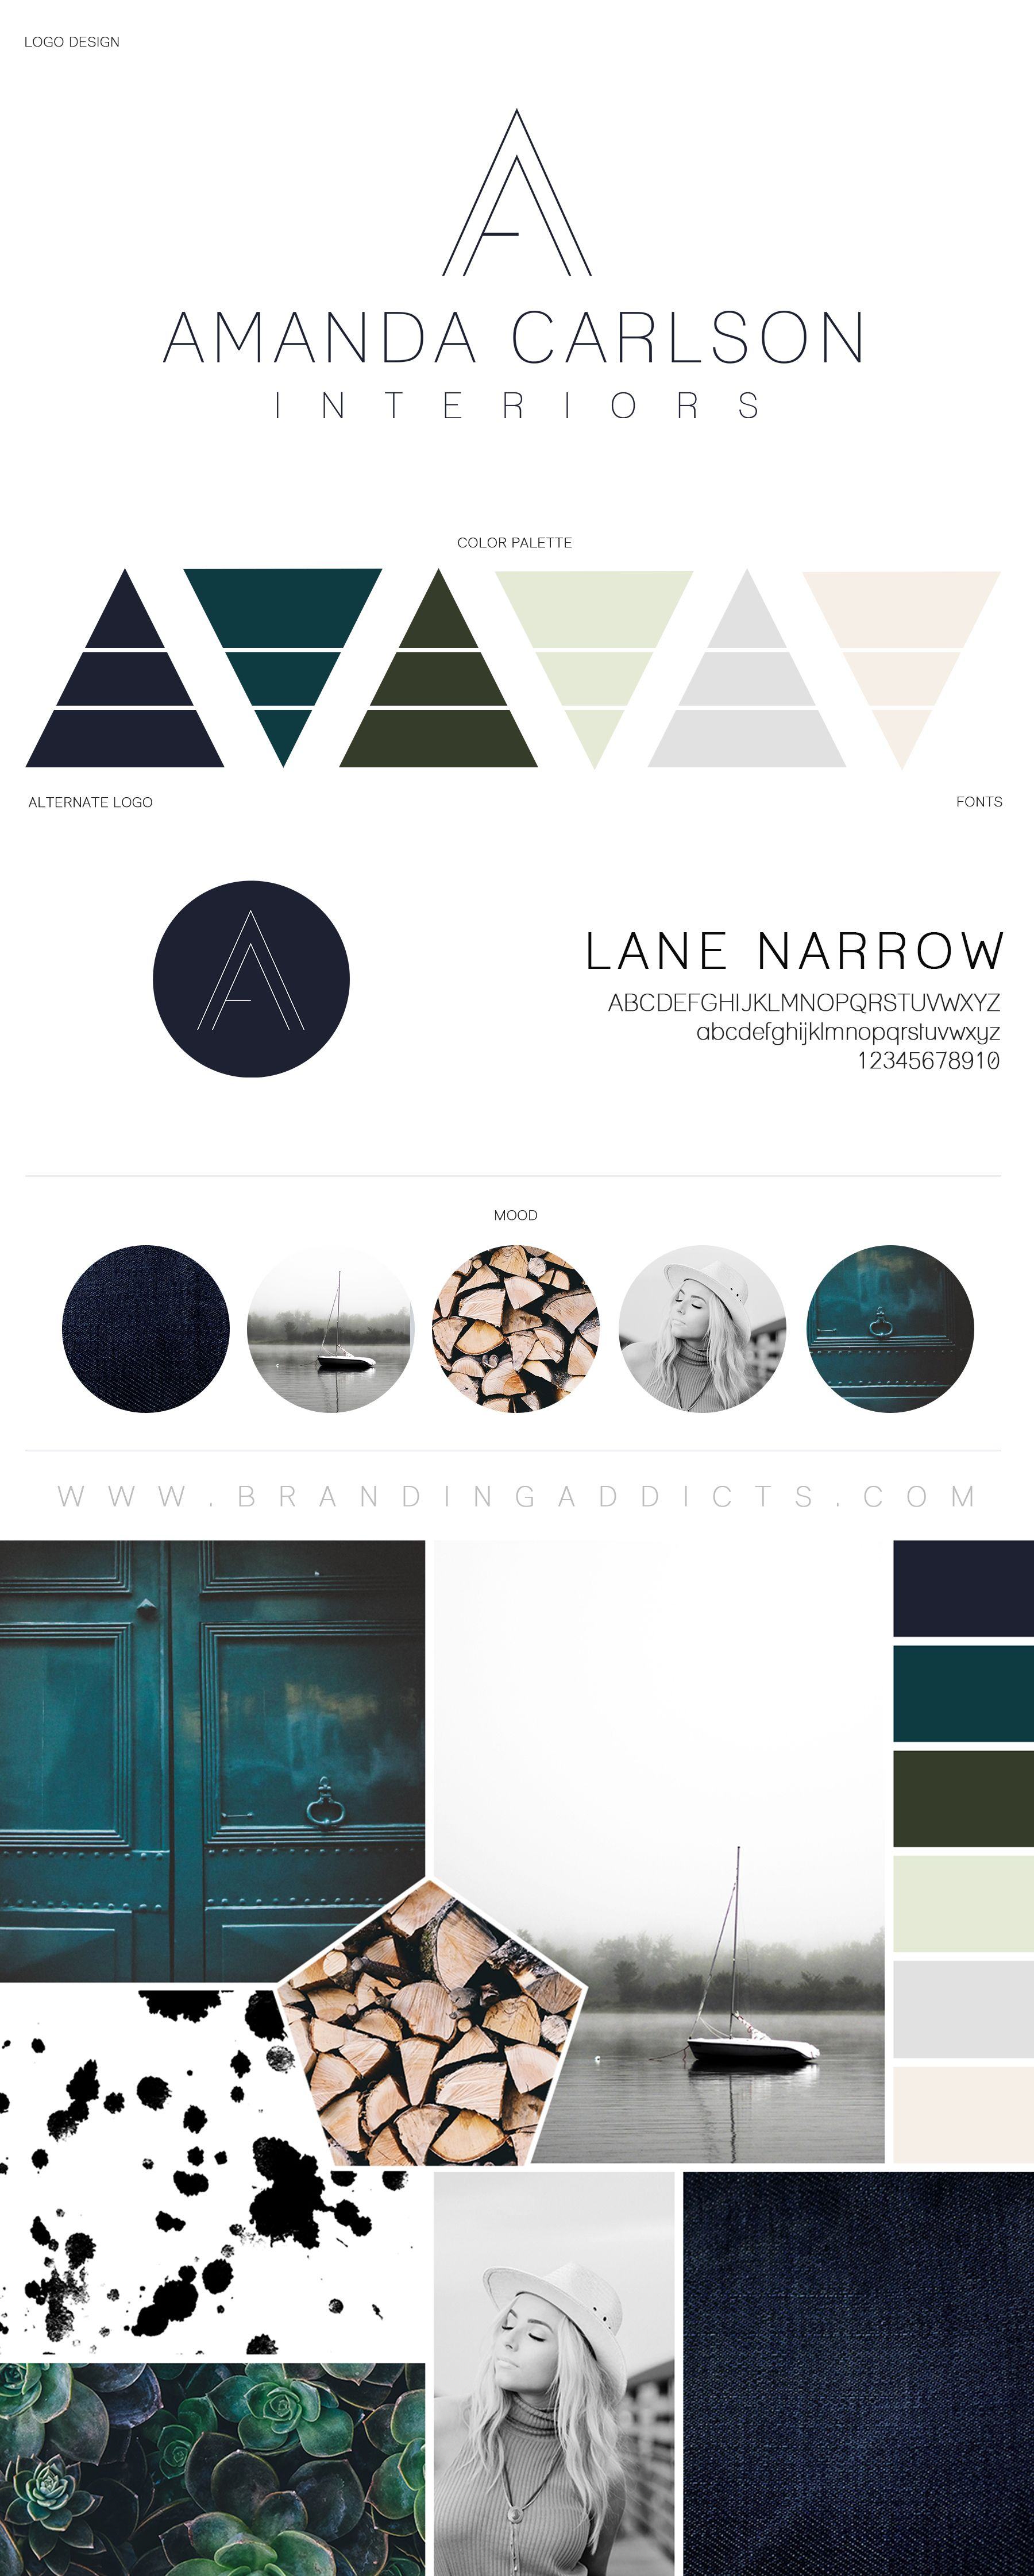 Branding Addicts New Brand Board Modern And Tranquil Design Rustic Meets Relaxation With A Touch Of Industrial House Logo Design Mood Board Design Wood Logo